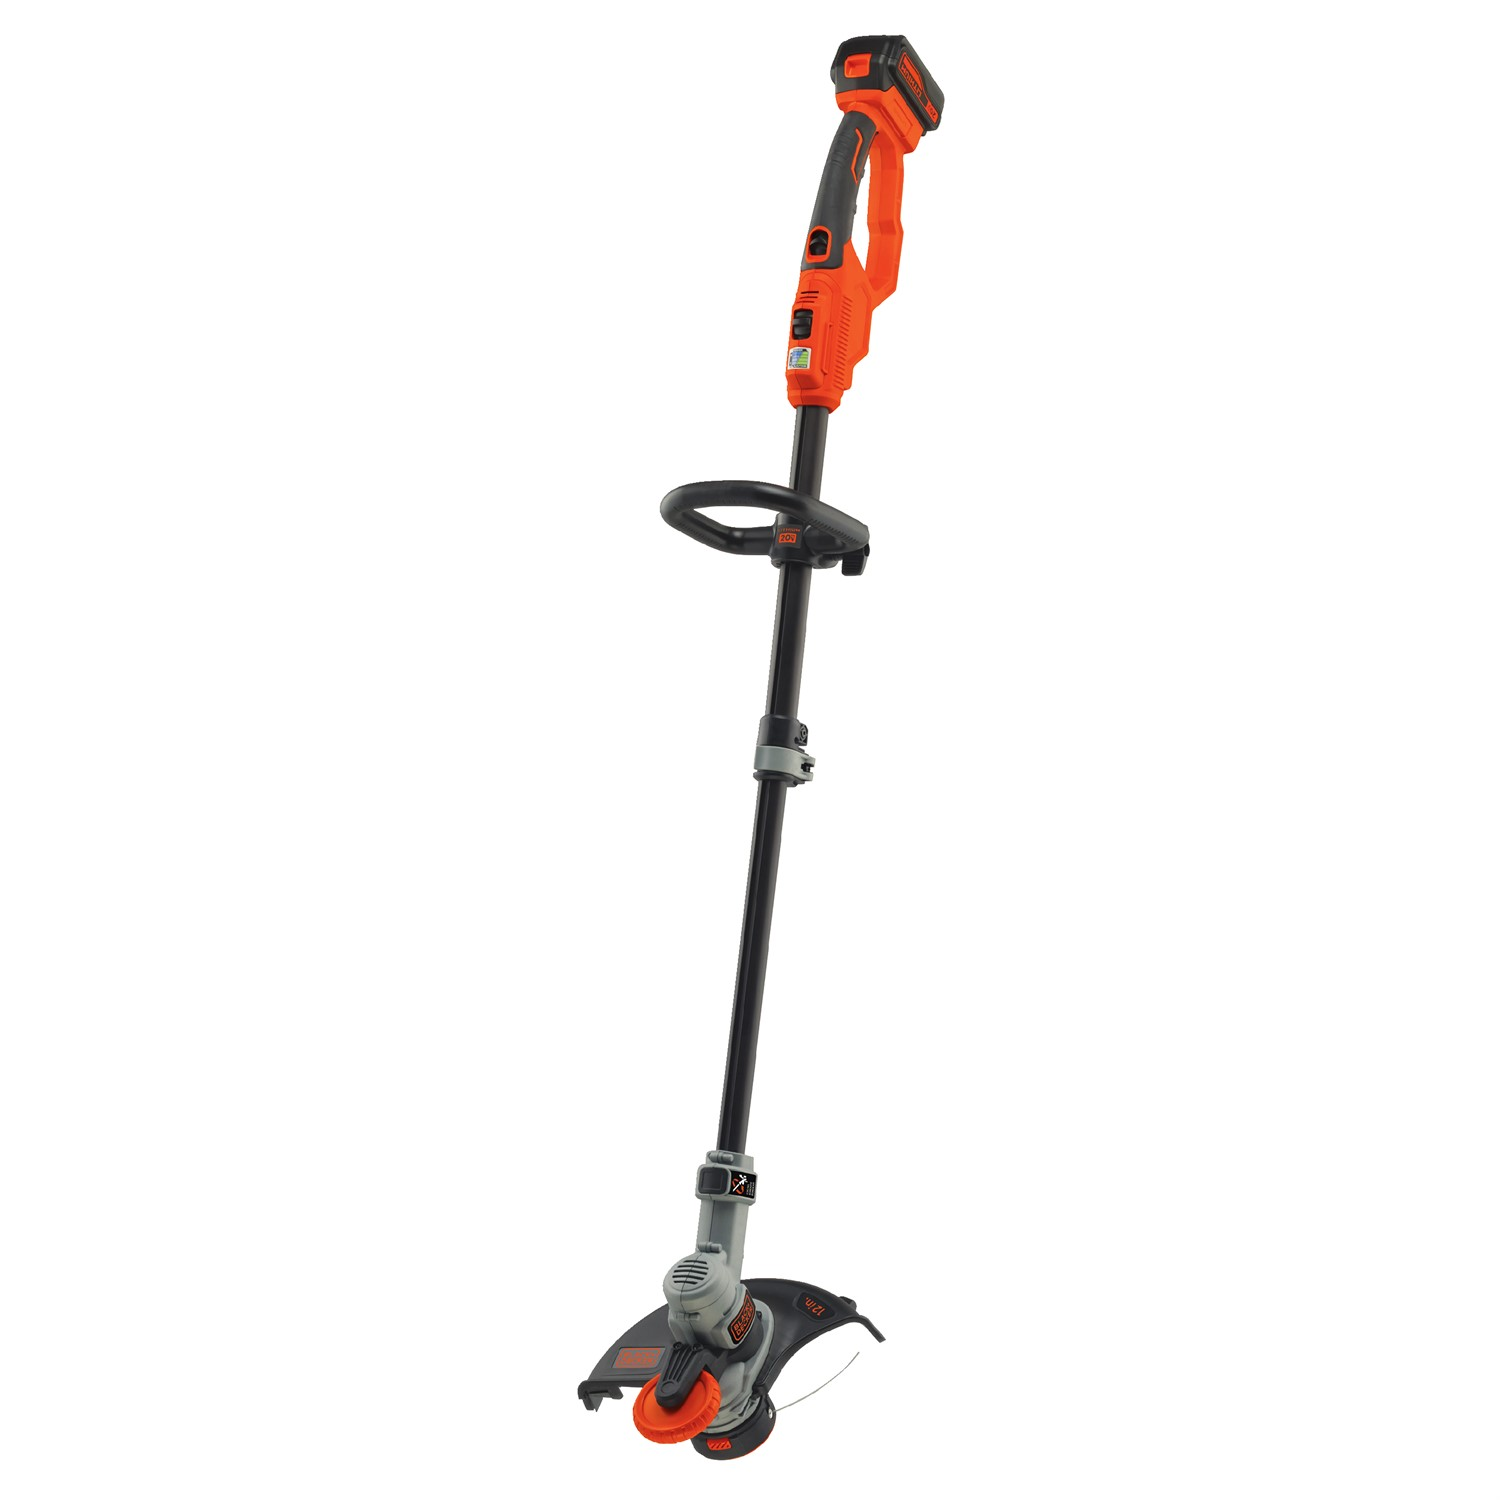 Black & Decker LST400 20V MAX* Lithium 12 in. High Performance Trimmer Edger by Stanley Black & Decker